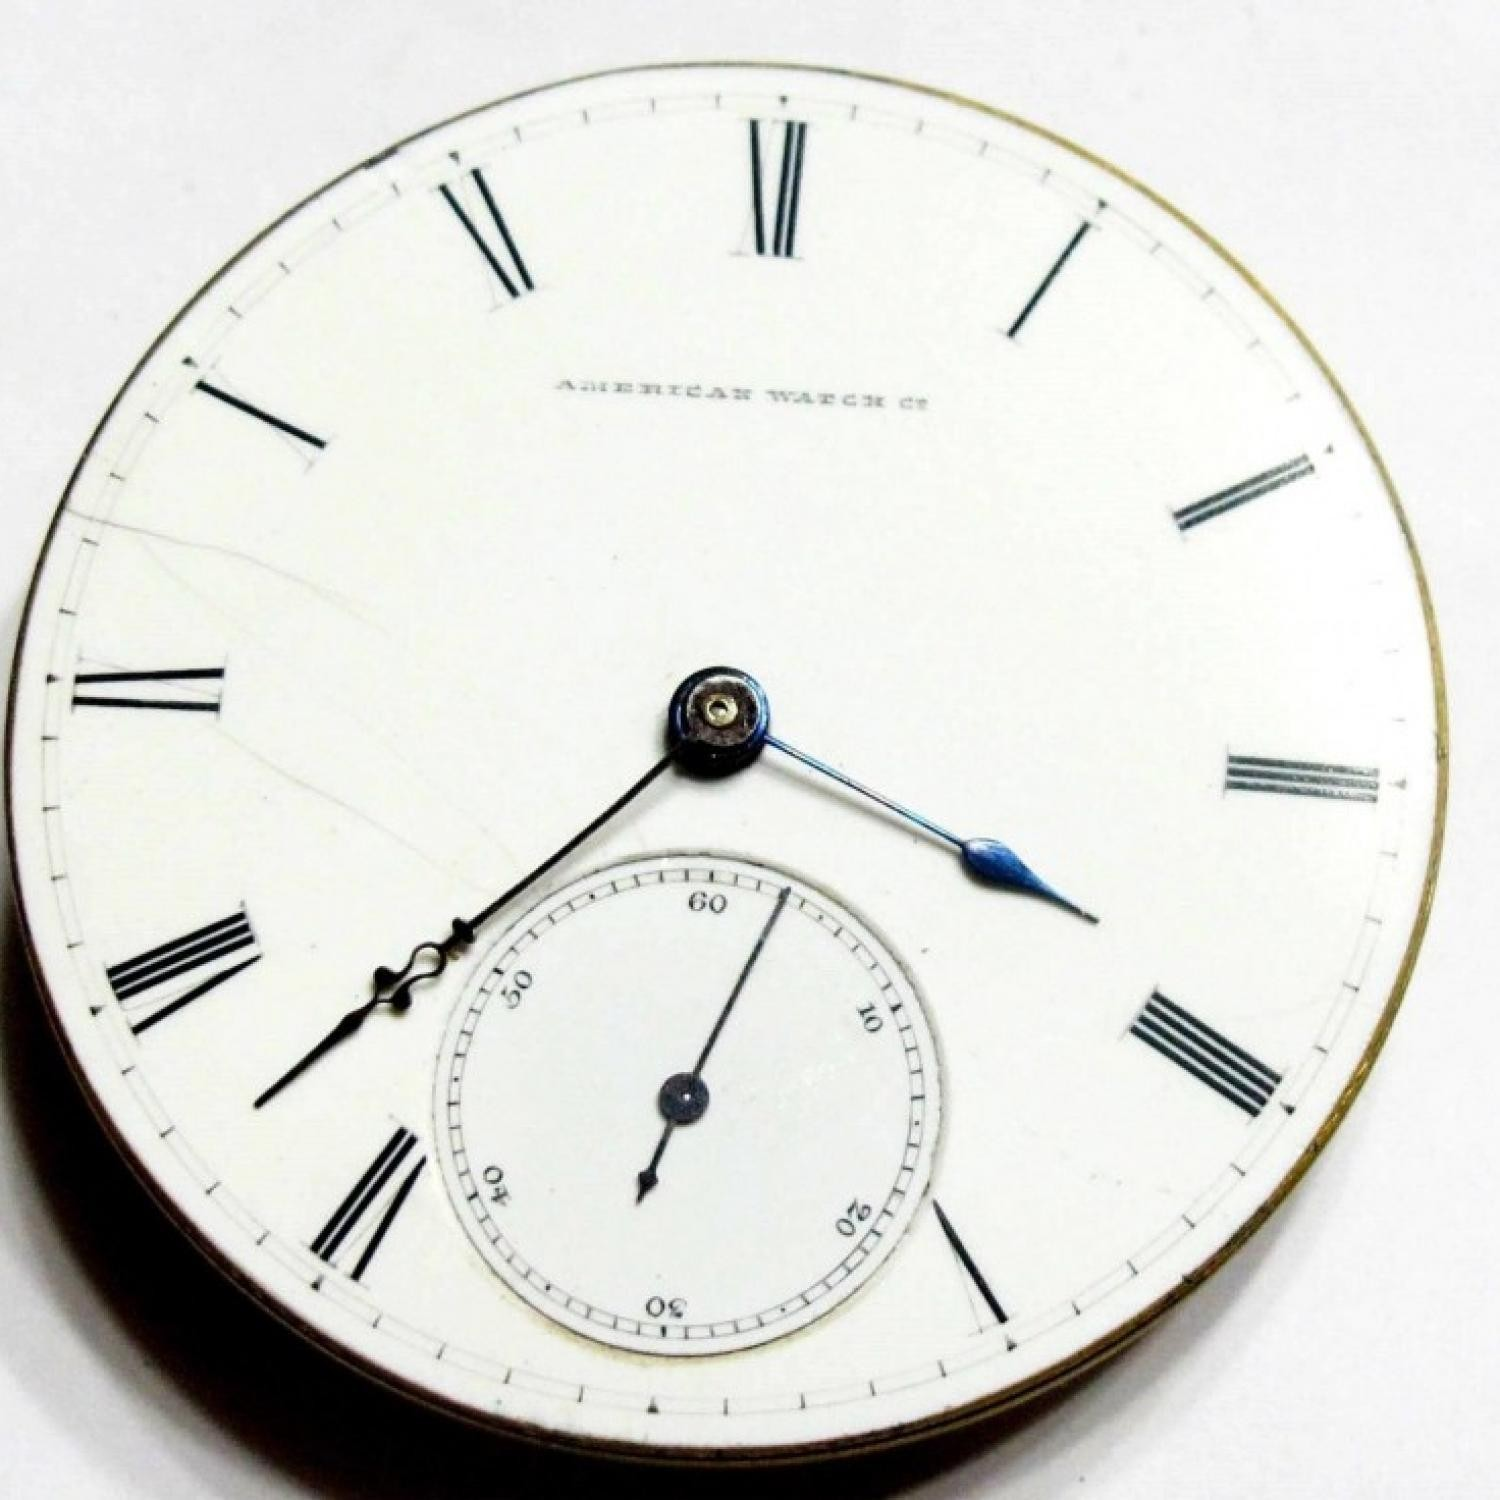 Image of Waltham A.T. & Co. #280575 Dial